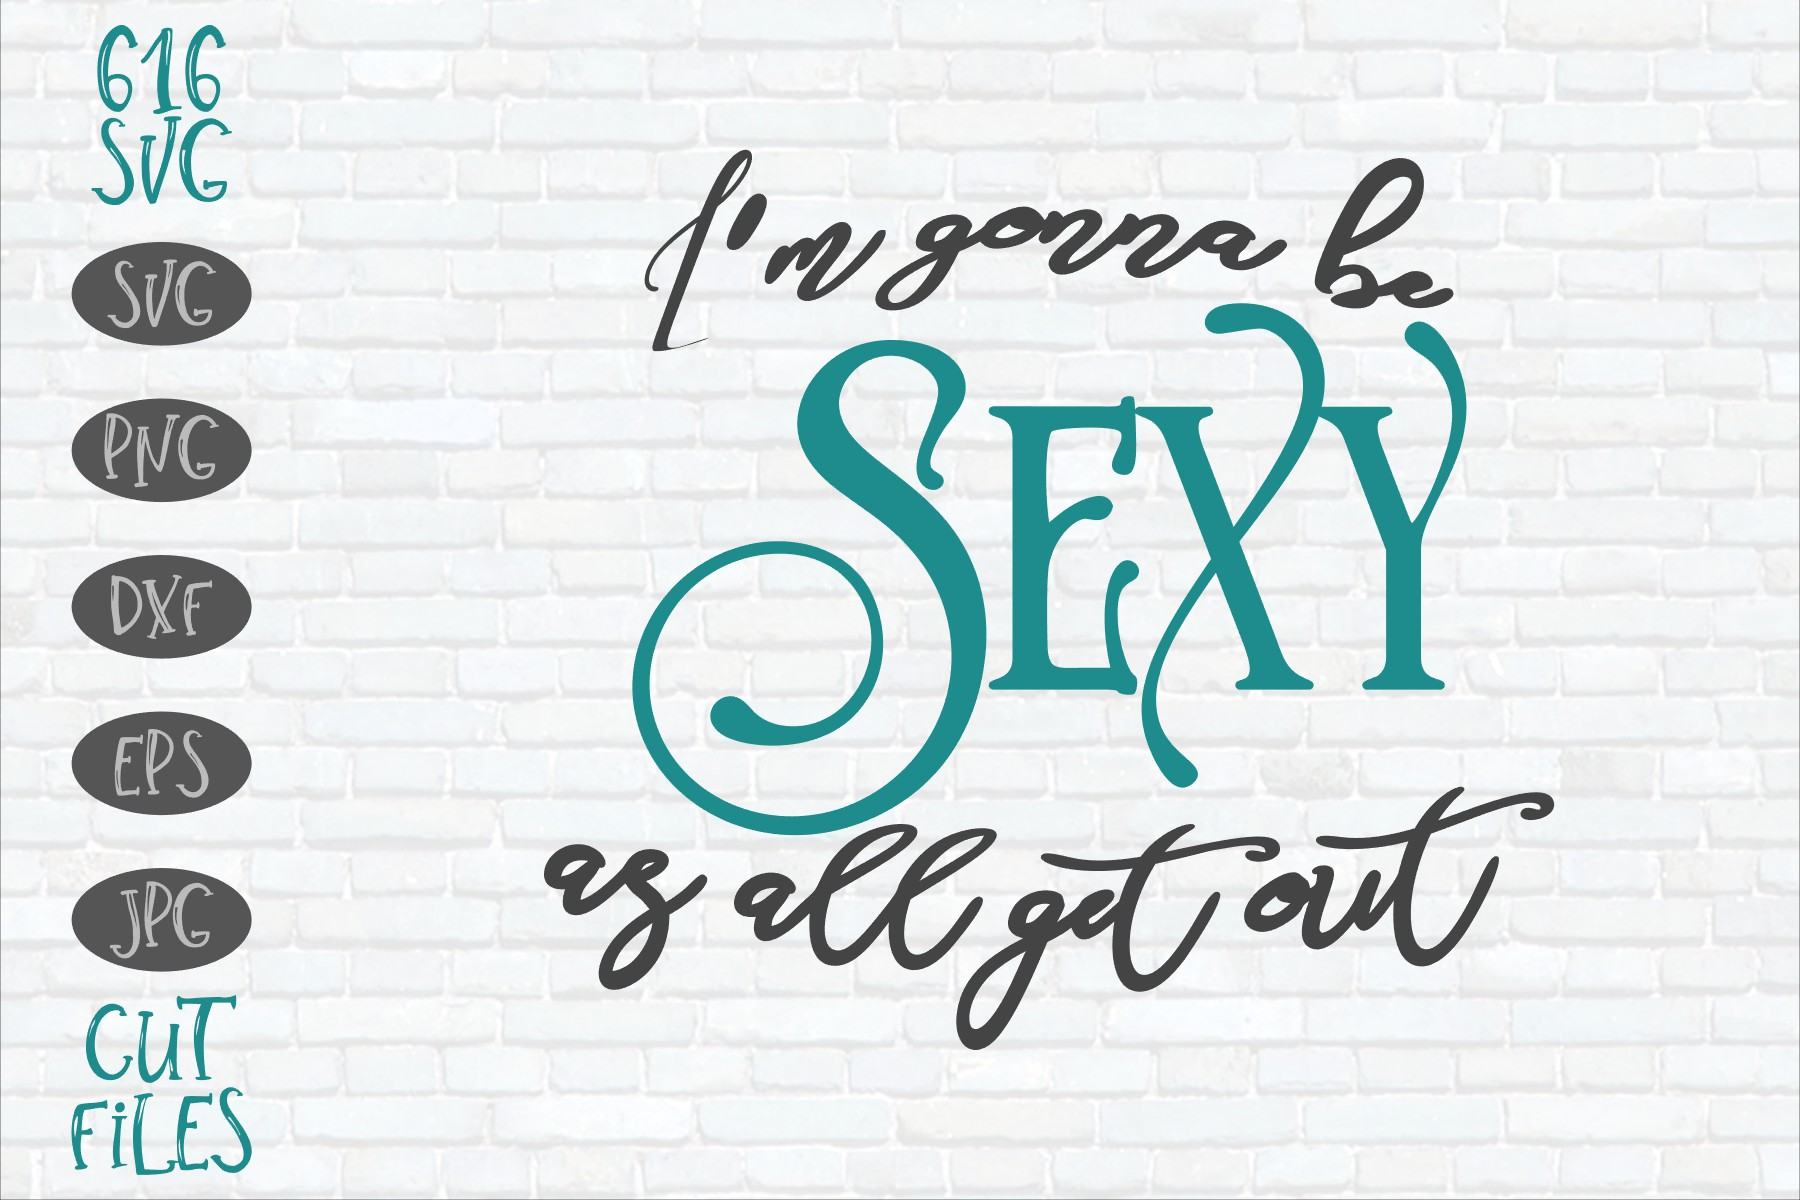 I'm gonna be sexy as all get out example image 1